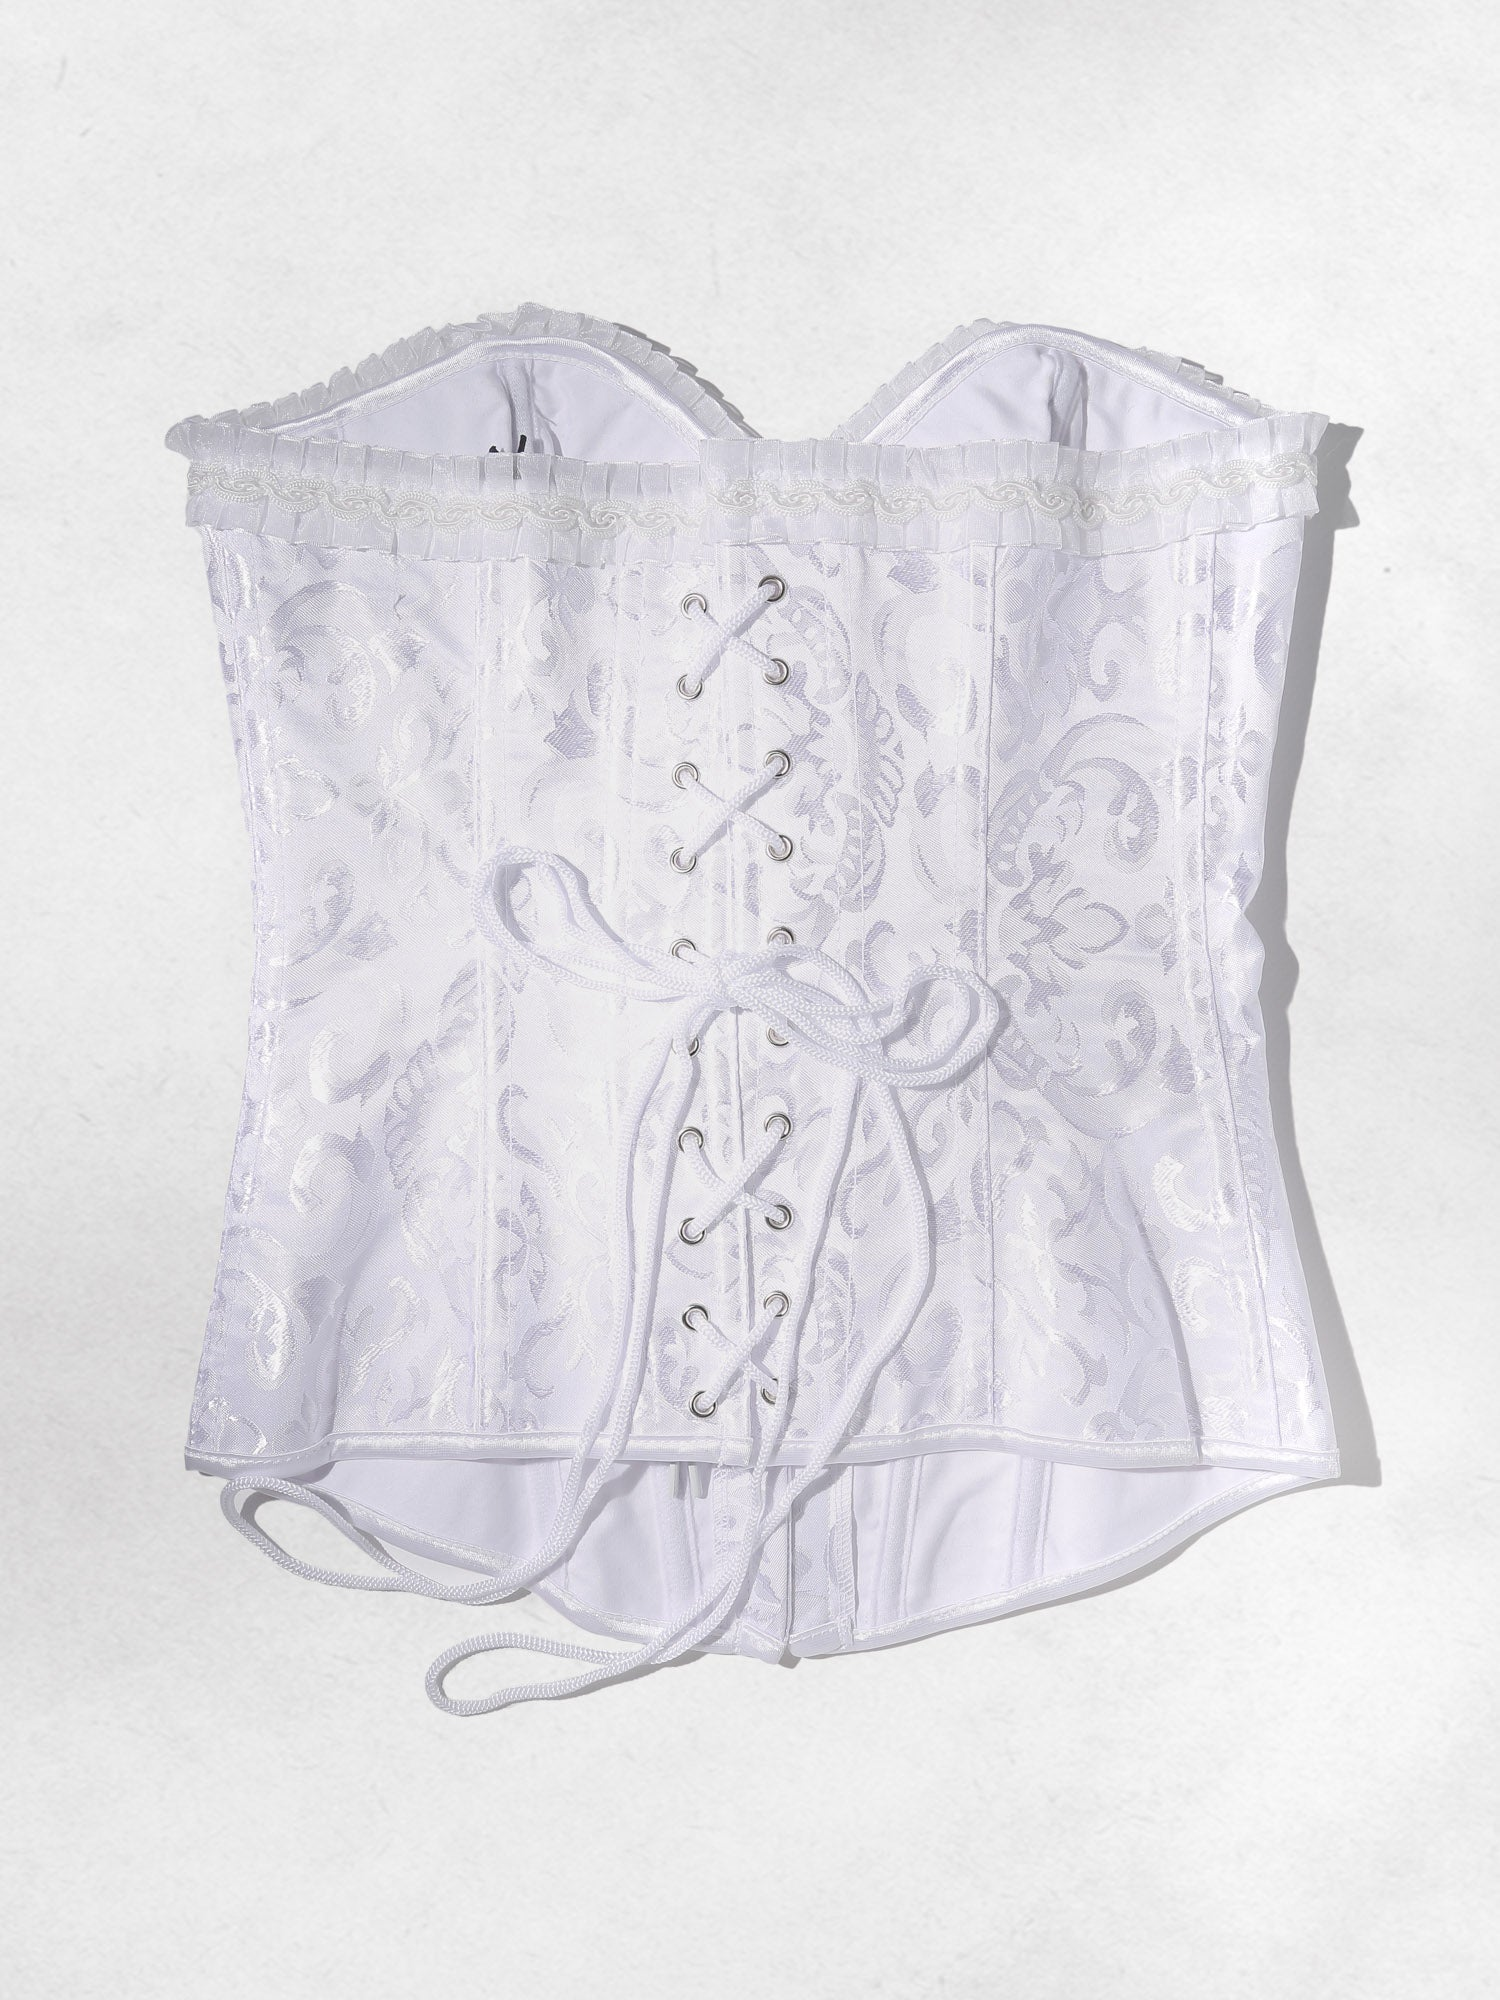 Clothing The Billie Corset Top - White Brocade Vanessa Mooney